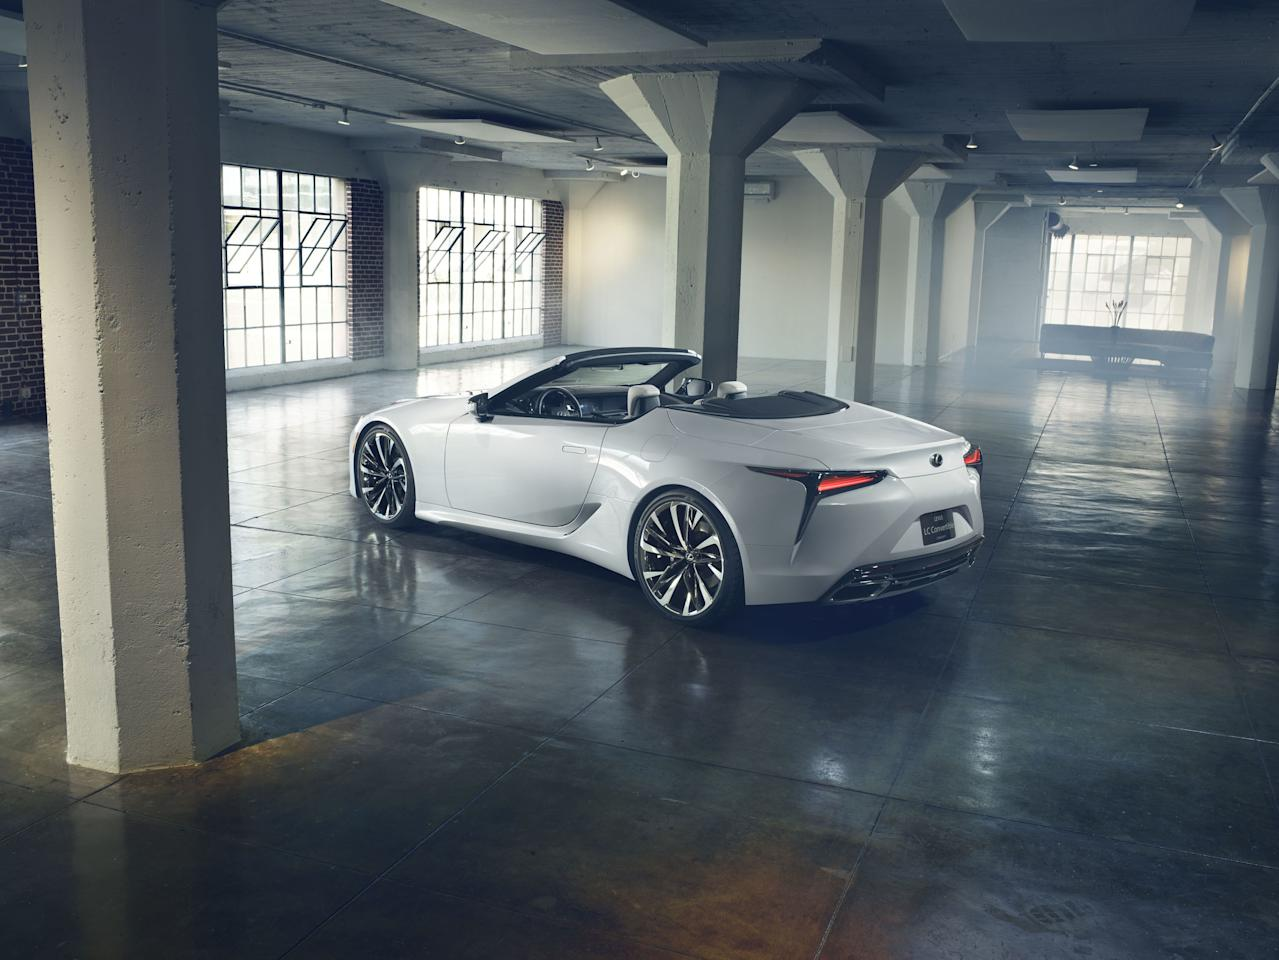 "The LC is Lexus's <a rel=""nofollow"" href=""https://www.architecturaldigest.com/story/2018-lexus-lc500-japanese-aston-martin?mbid=synd_yahoo_rss"">most lovely vehicle</a>, a lithe and athletic grand touring coupe. Providing it with a retractable top only increases its appeal to us. Though this vehicle is officially a ""concept,"" it seems destined for production."